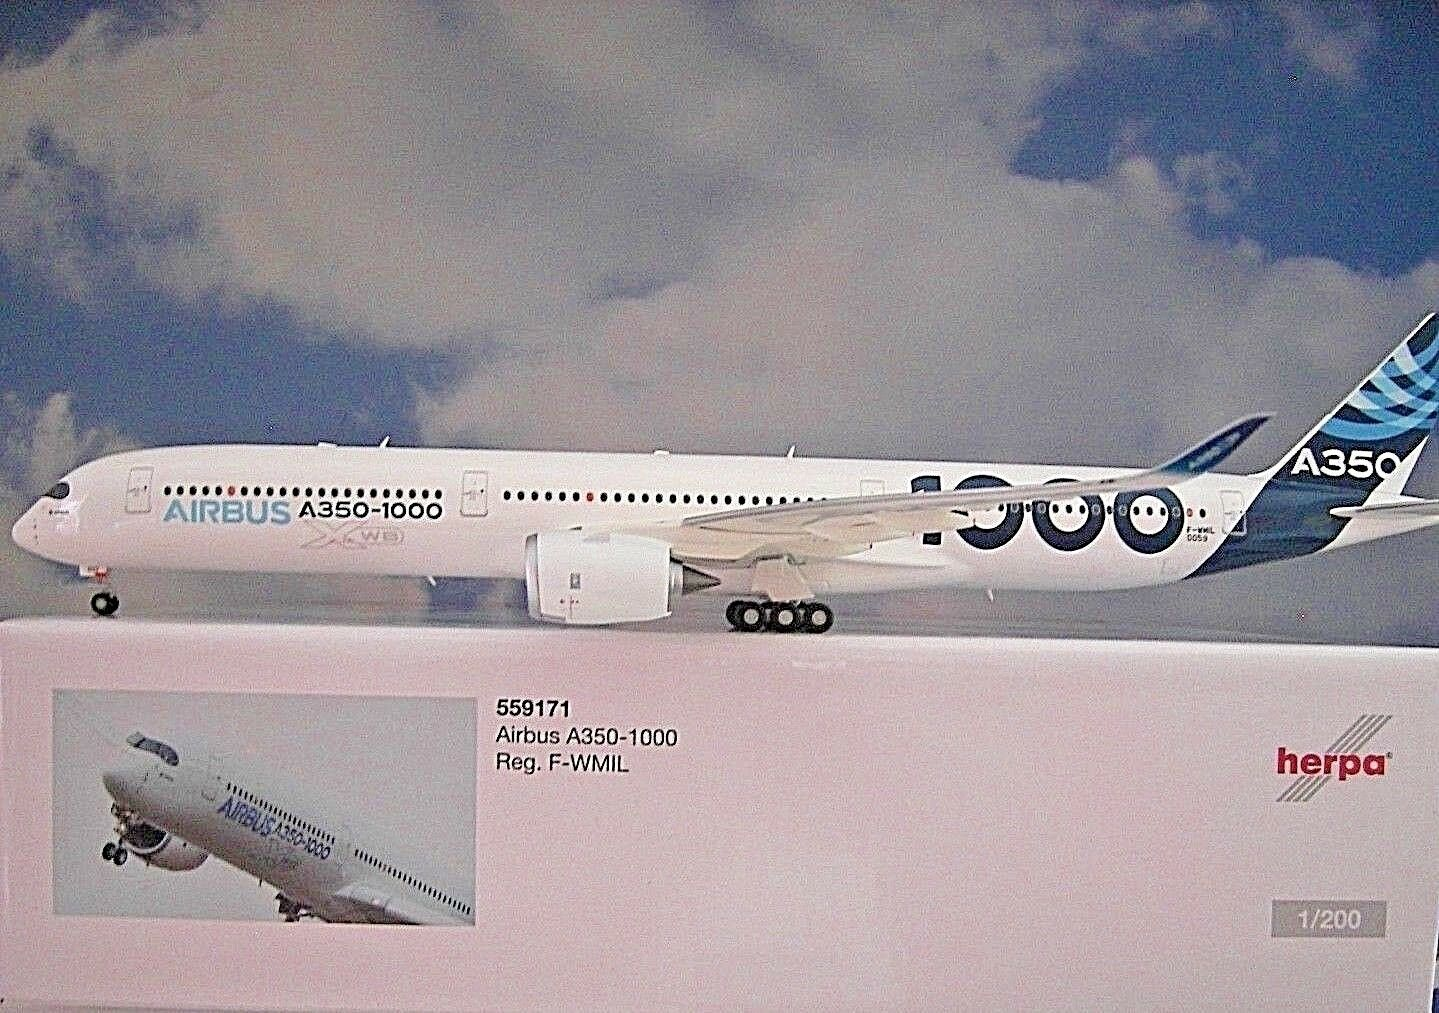 Herpa Wings 1:200 Airbus A350-1000 Airbus Industria F-Wmil 559171